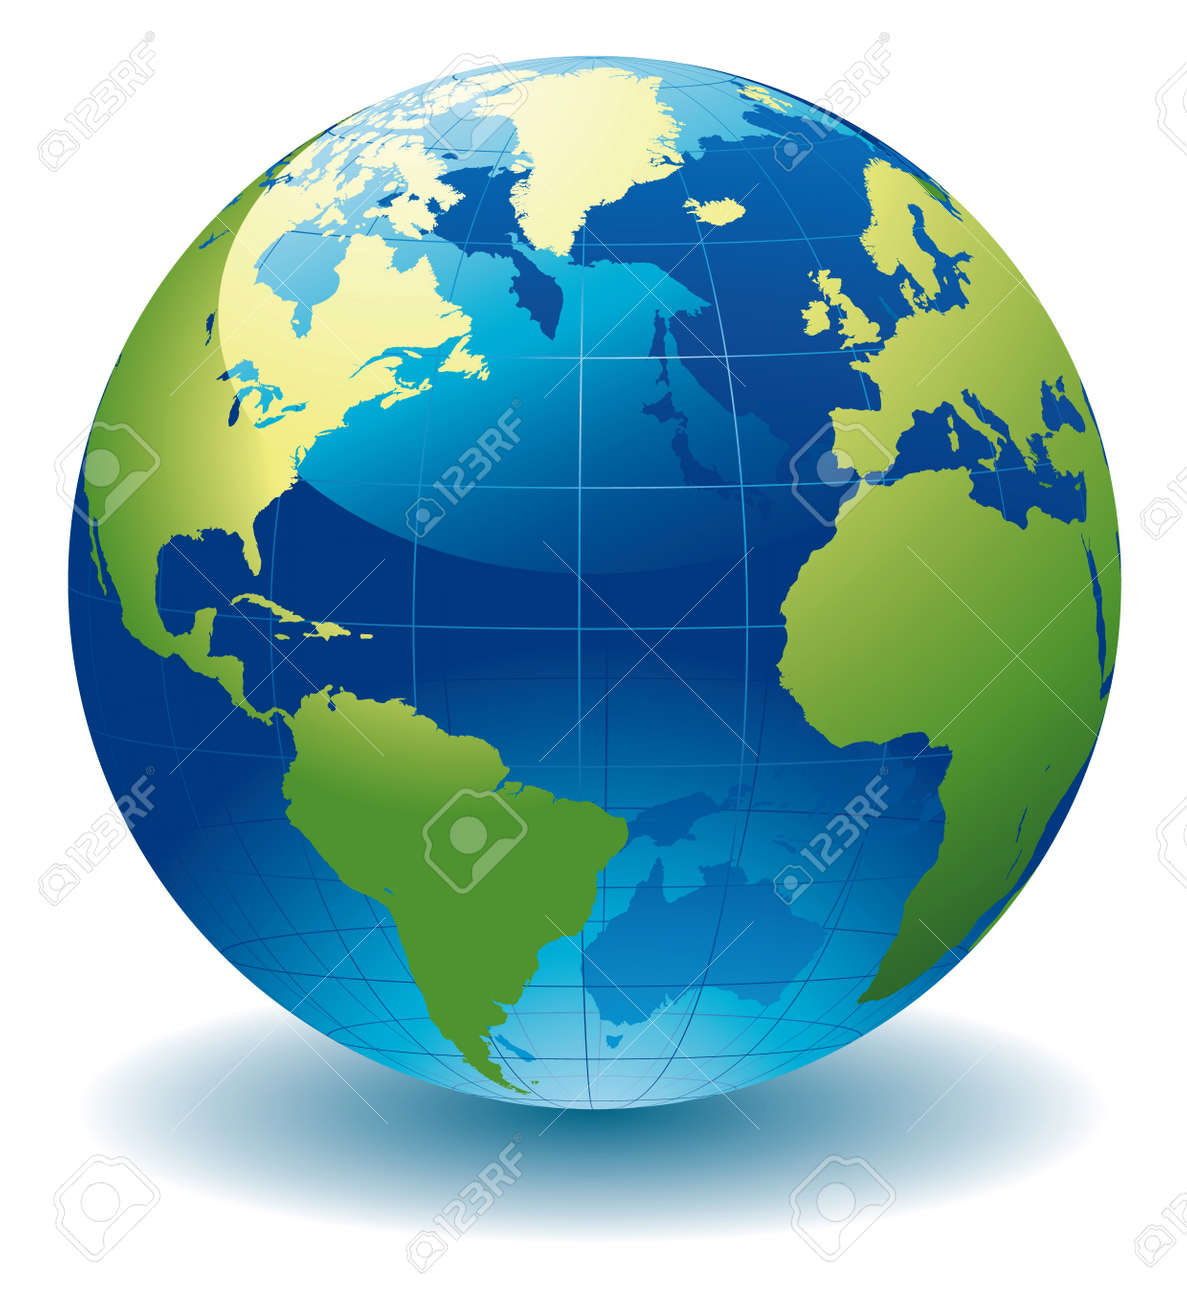 World Globe Map Royalty Free Cliparts, Vectors, And Stock